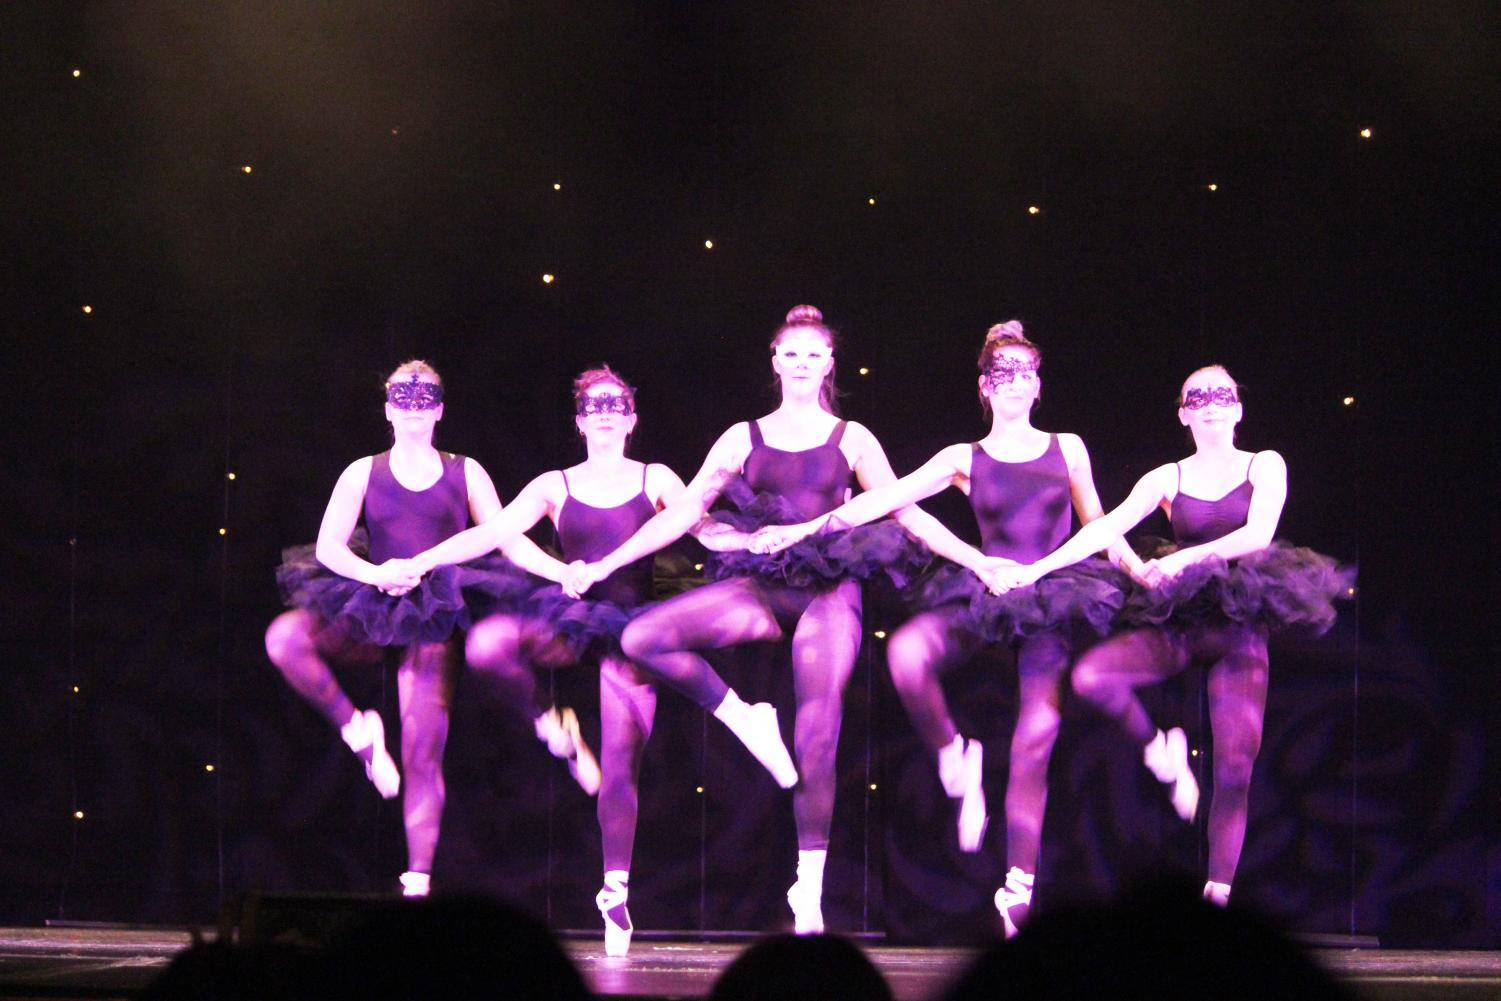 """Senior choreographer Kristin Haydt (center) kicks with dancers in """"Control,"""" the only pointe piece performed at Dance Ensemble's show """"Electricity"""" Saturday night."""